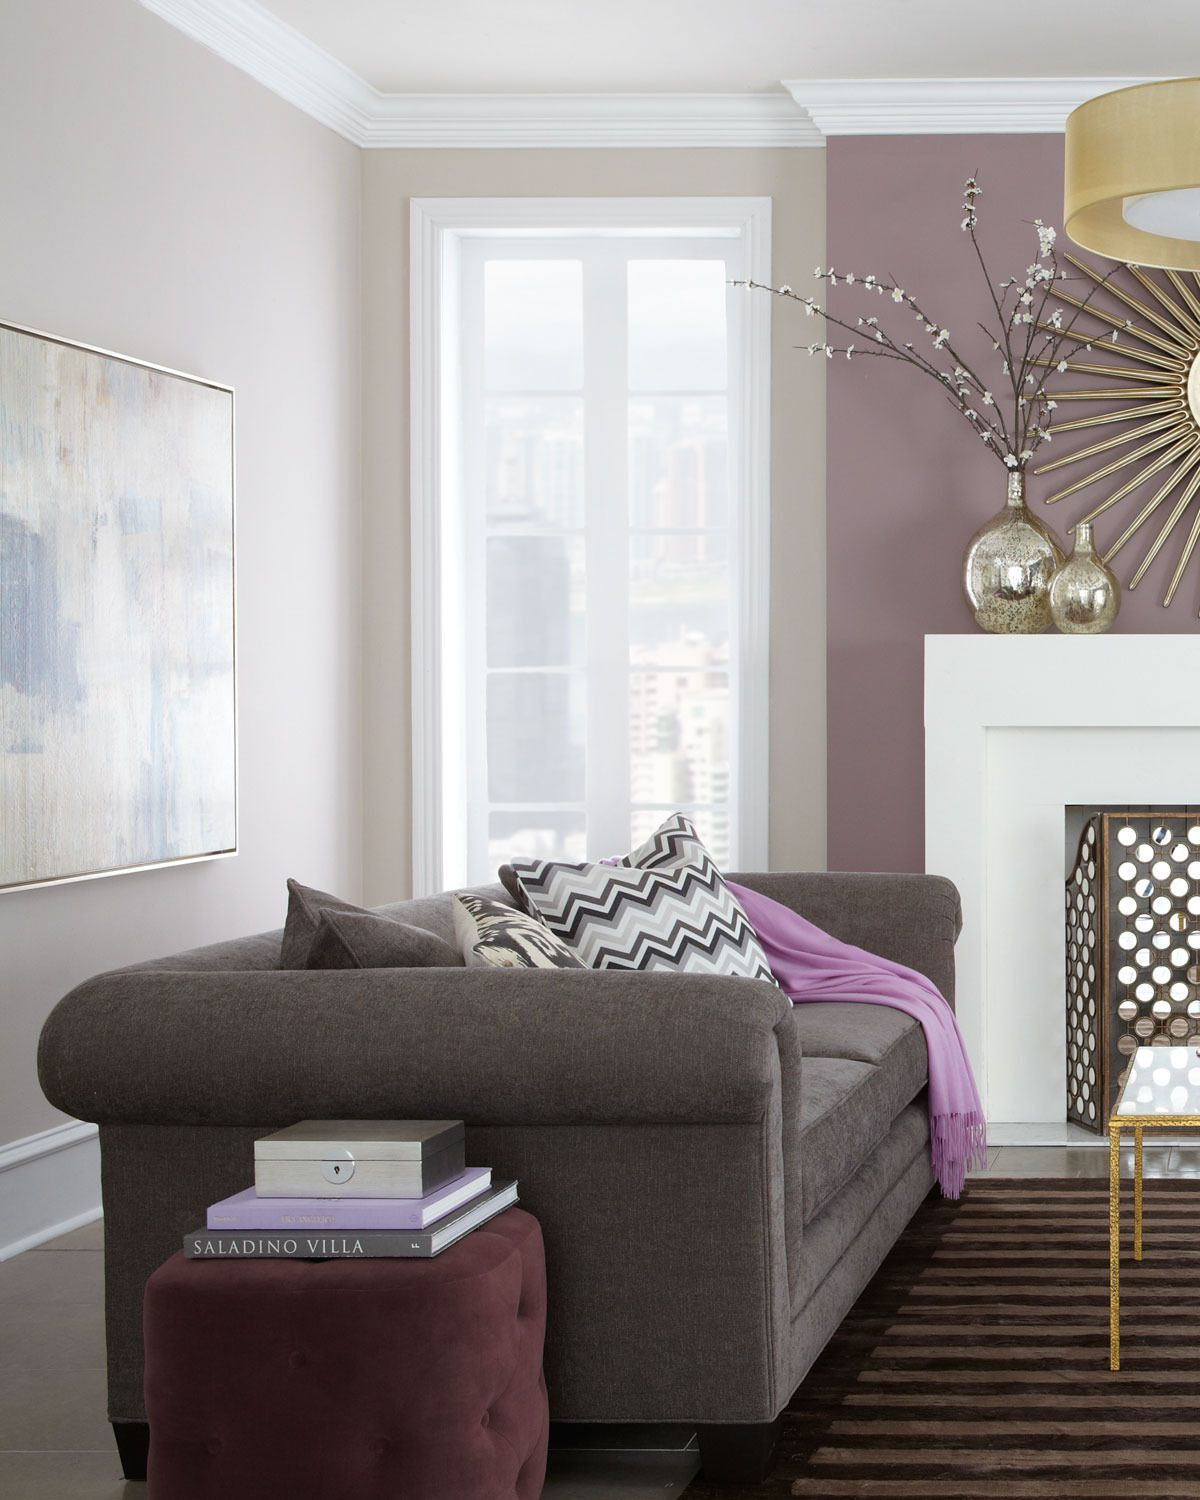 Living room colors but with bold eggplant rather than neutral purple ...